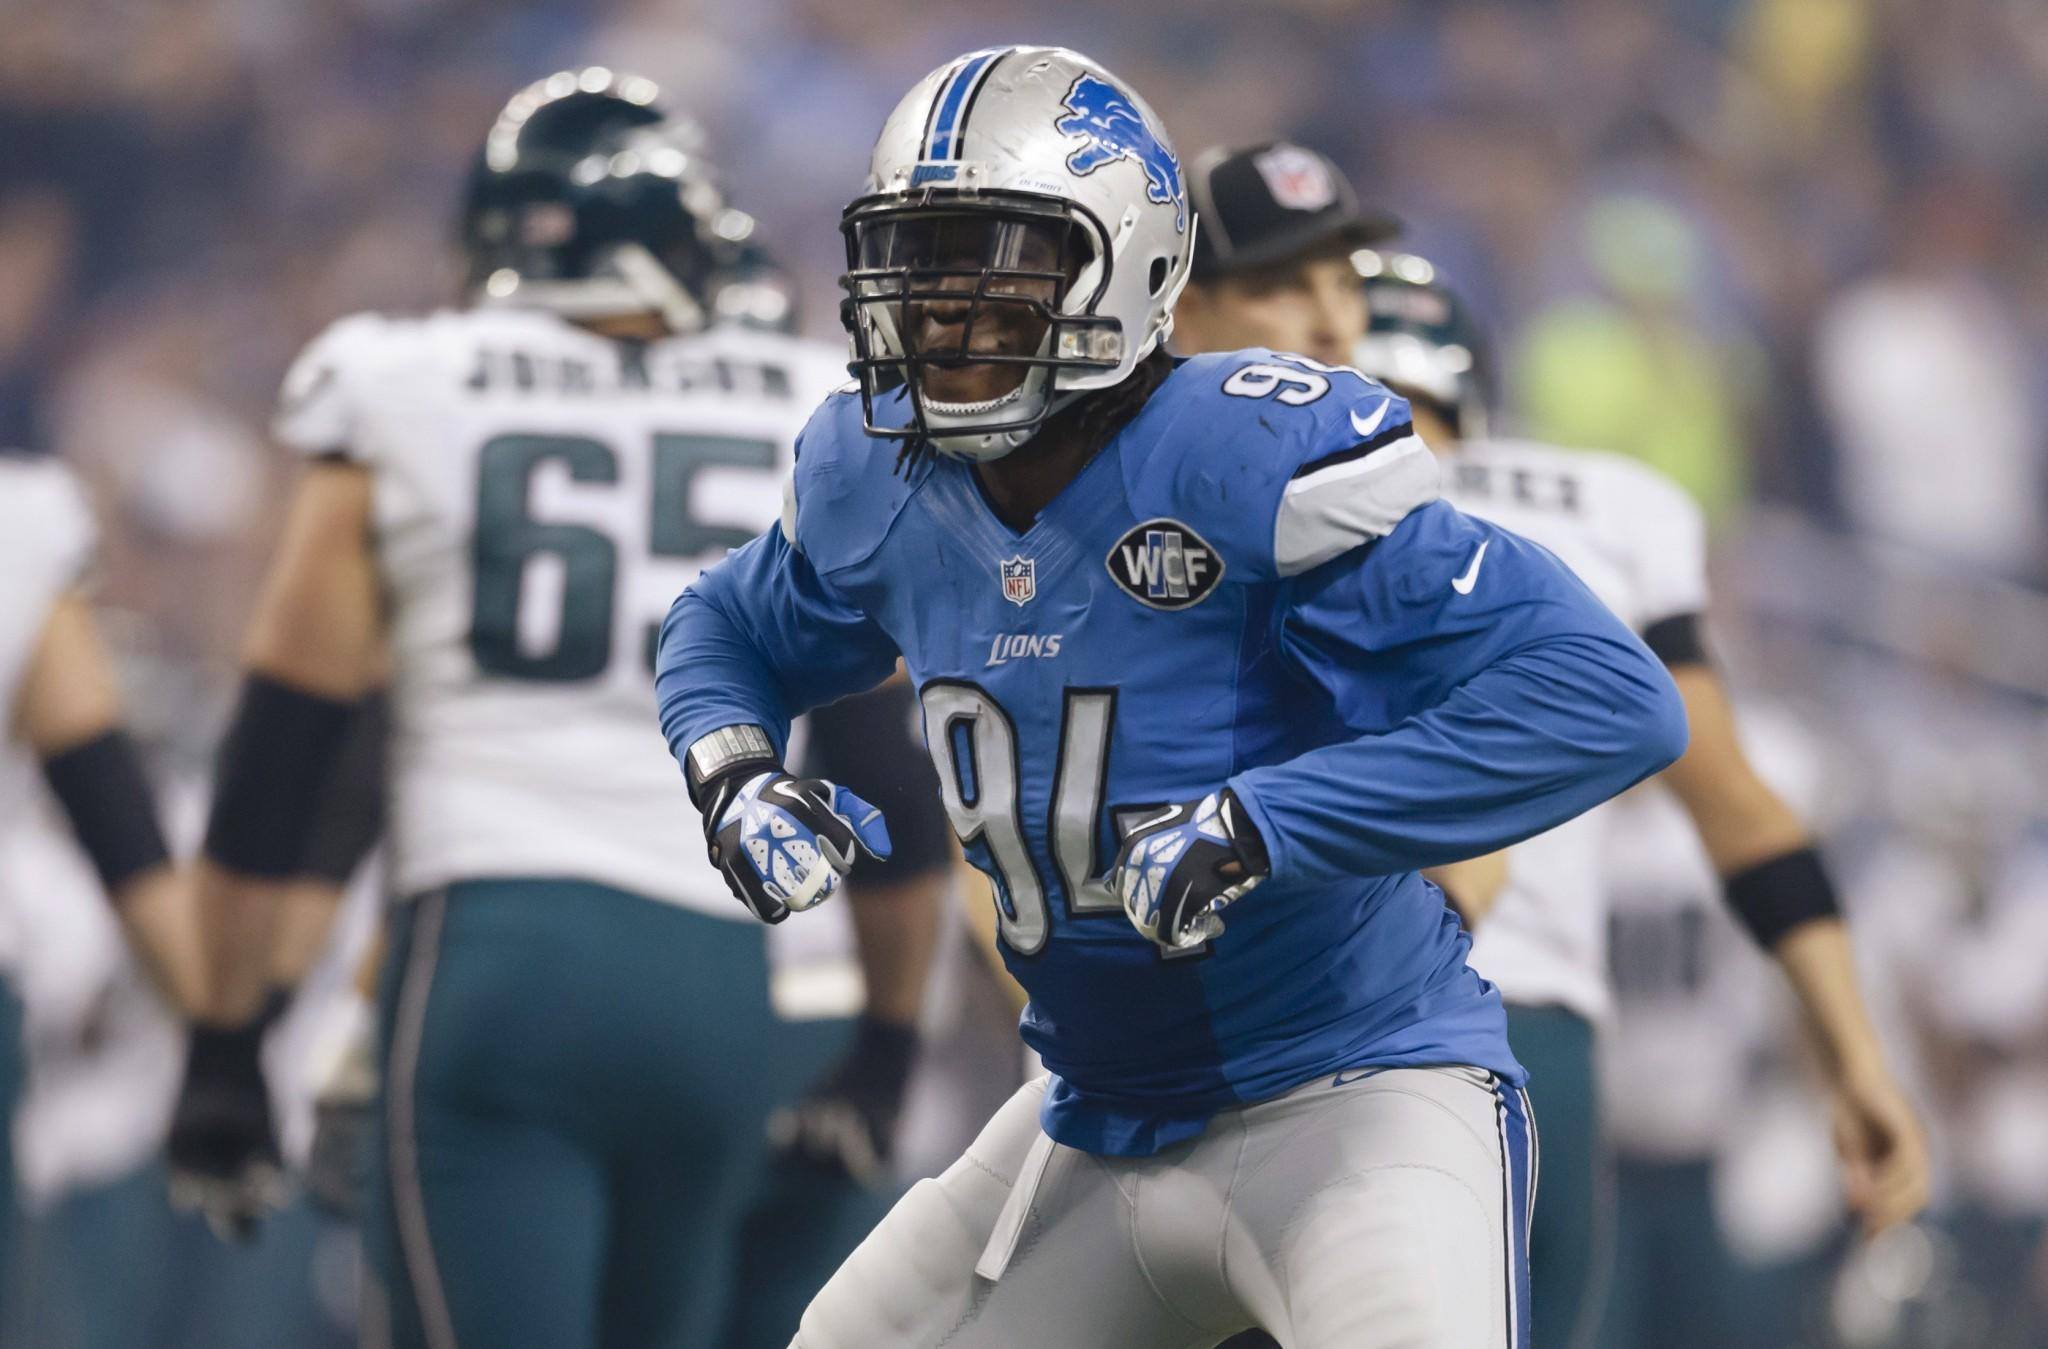 How old is Lions Ziggy Ansah Ghanaian reports raise doubt about